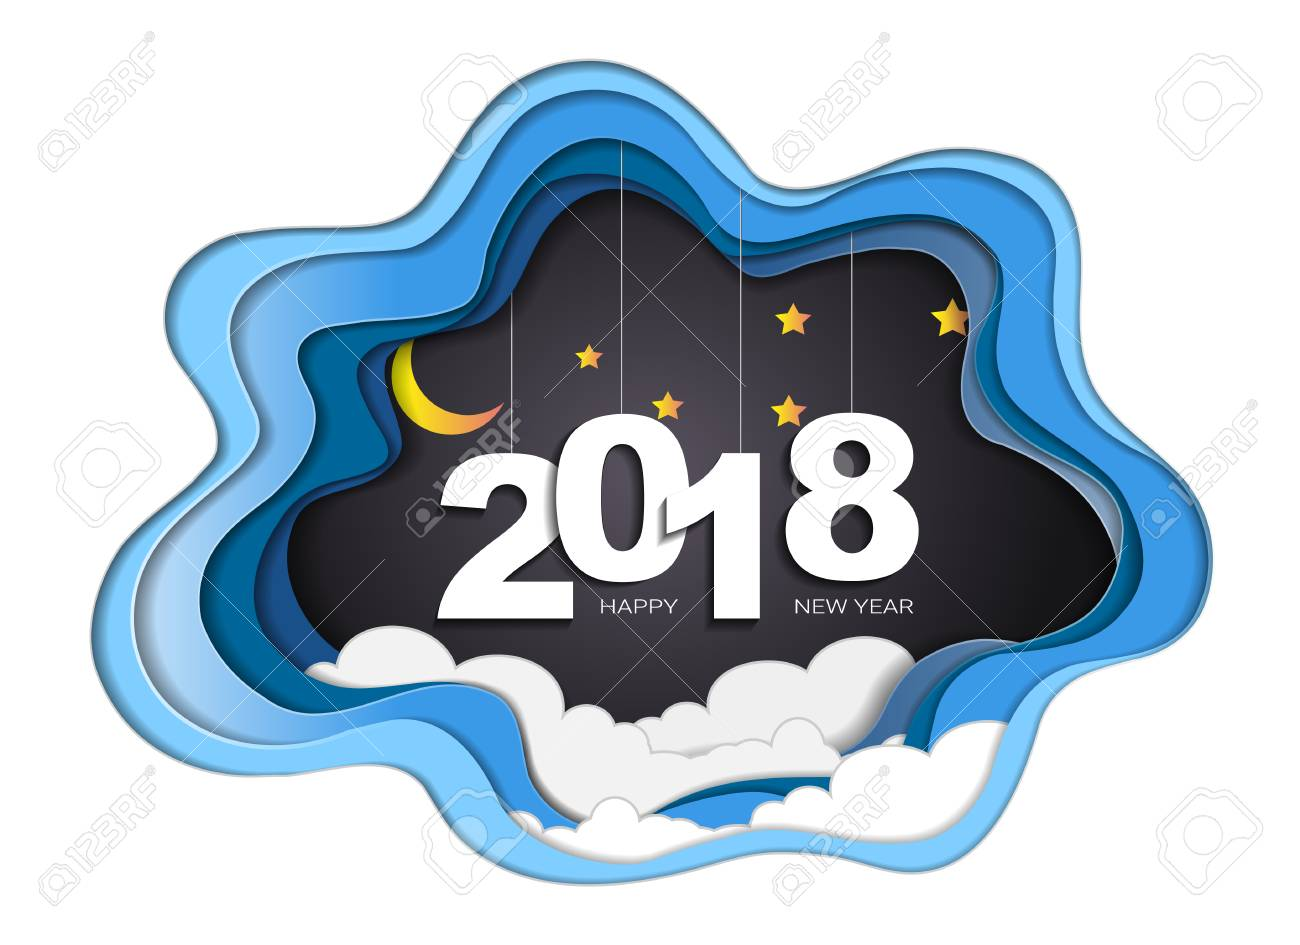 2018 Happy New Year Concept With Moon And Stars Symbols Of